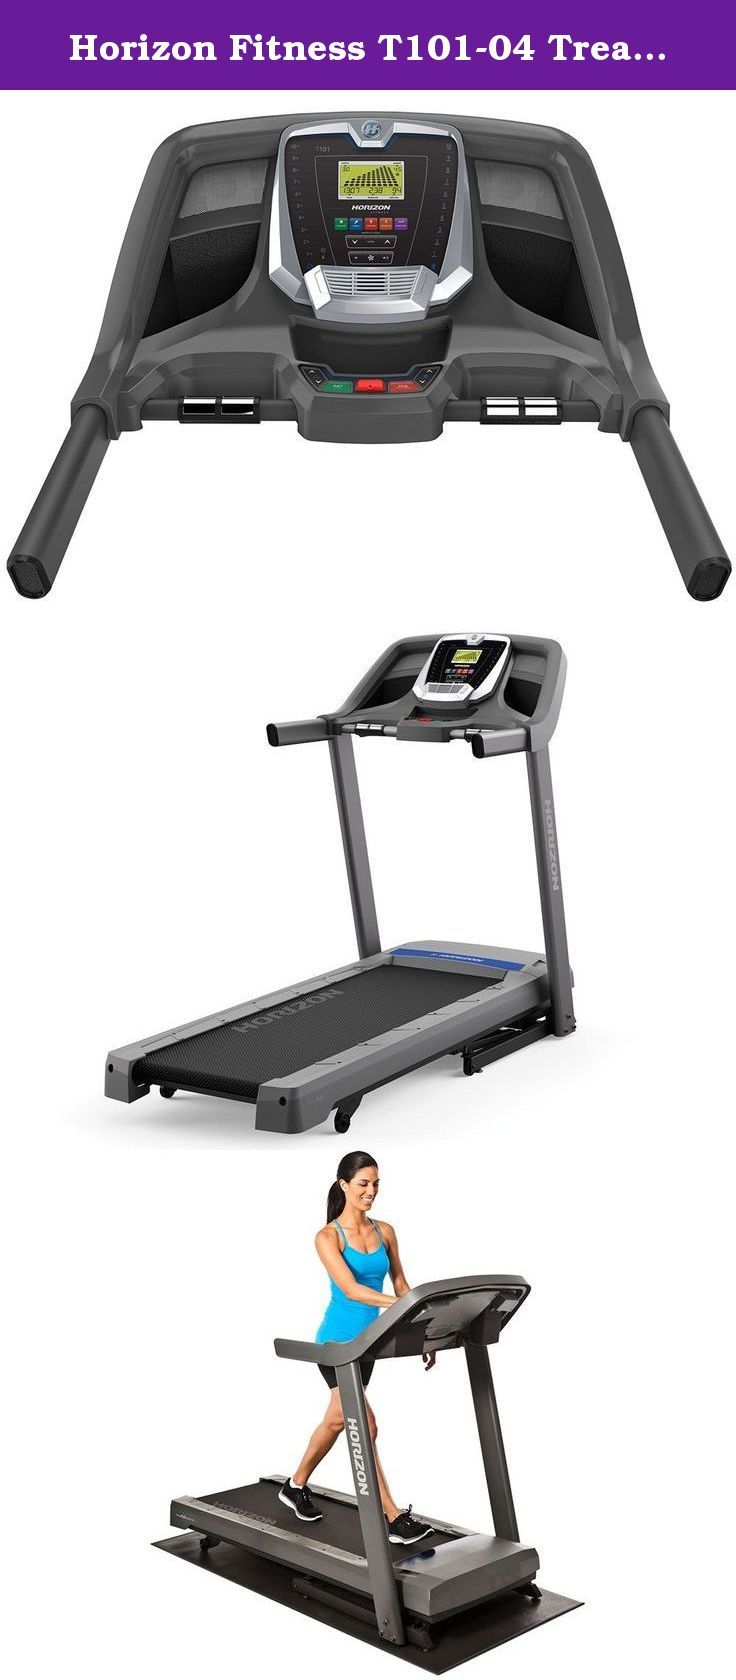 "Horizon Fitness T101-04 Treadmill. Rated by the Treadmill Doctor as one of the ""Best Buys"" in its category, the new T101 treadmill includes a powerful, quiet motor and stable, comfortable platform. This is combined with a comprehensive console and Sonic Surround speakers with MP3 input so you play music through the console speakers. A strong frame that doesn't shake when you run will give you the confidence you need under your feet to stick with your program. Horizon Fitness treadmills…"